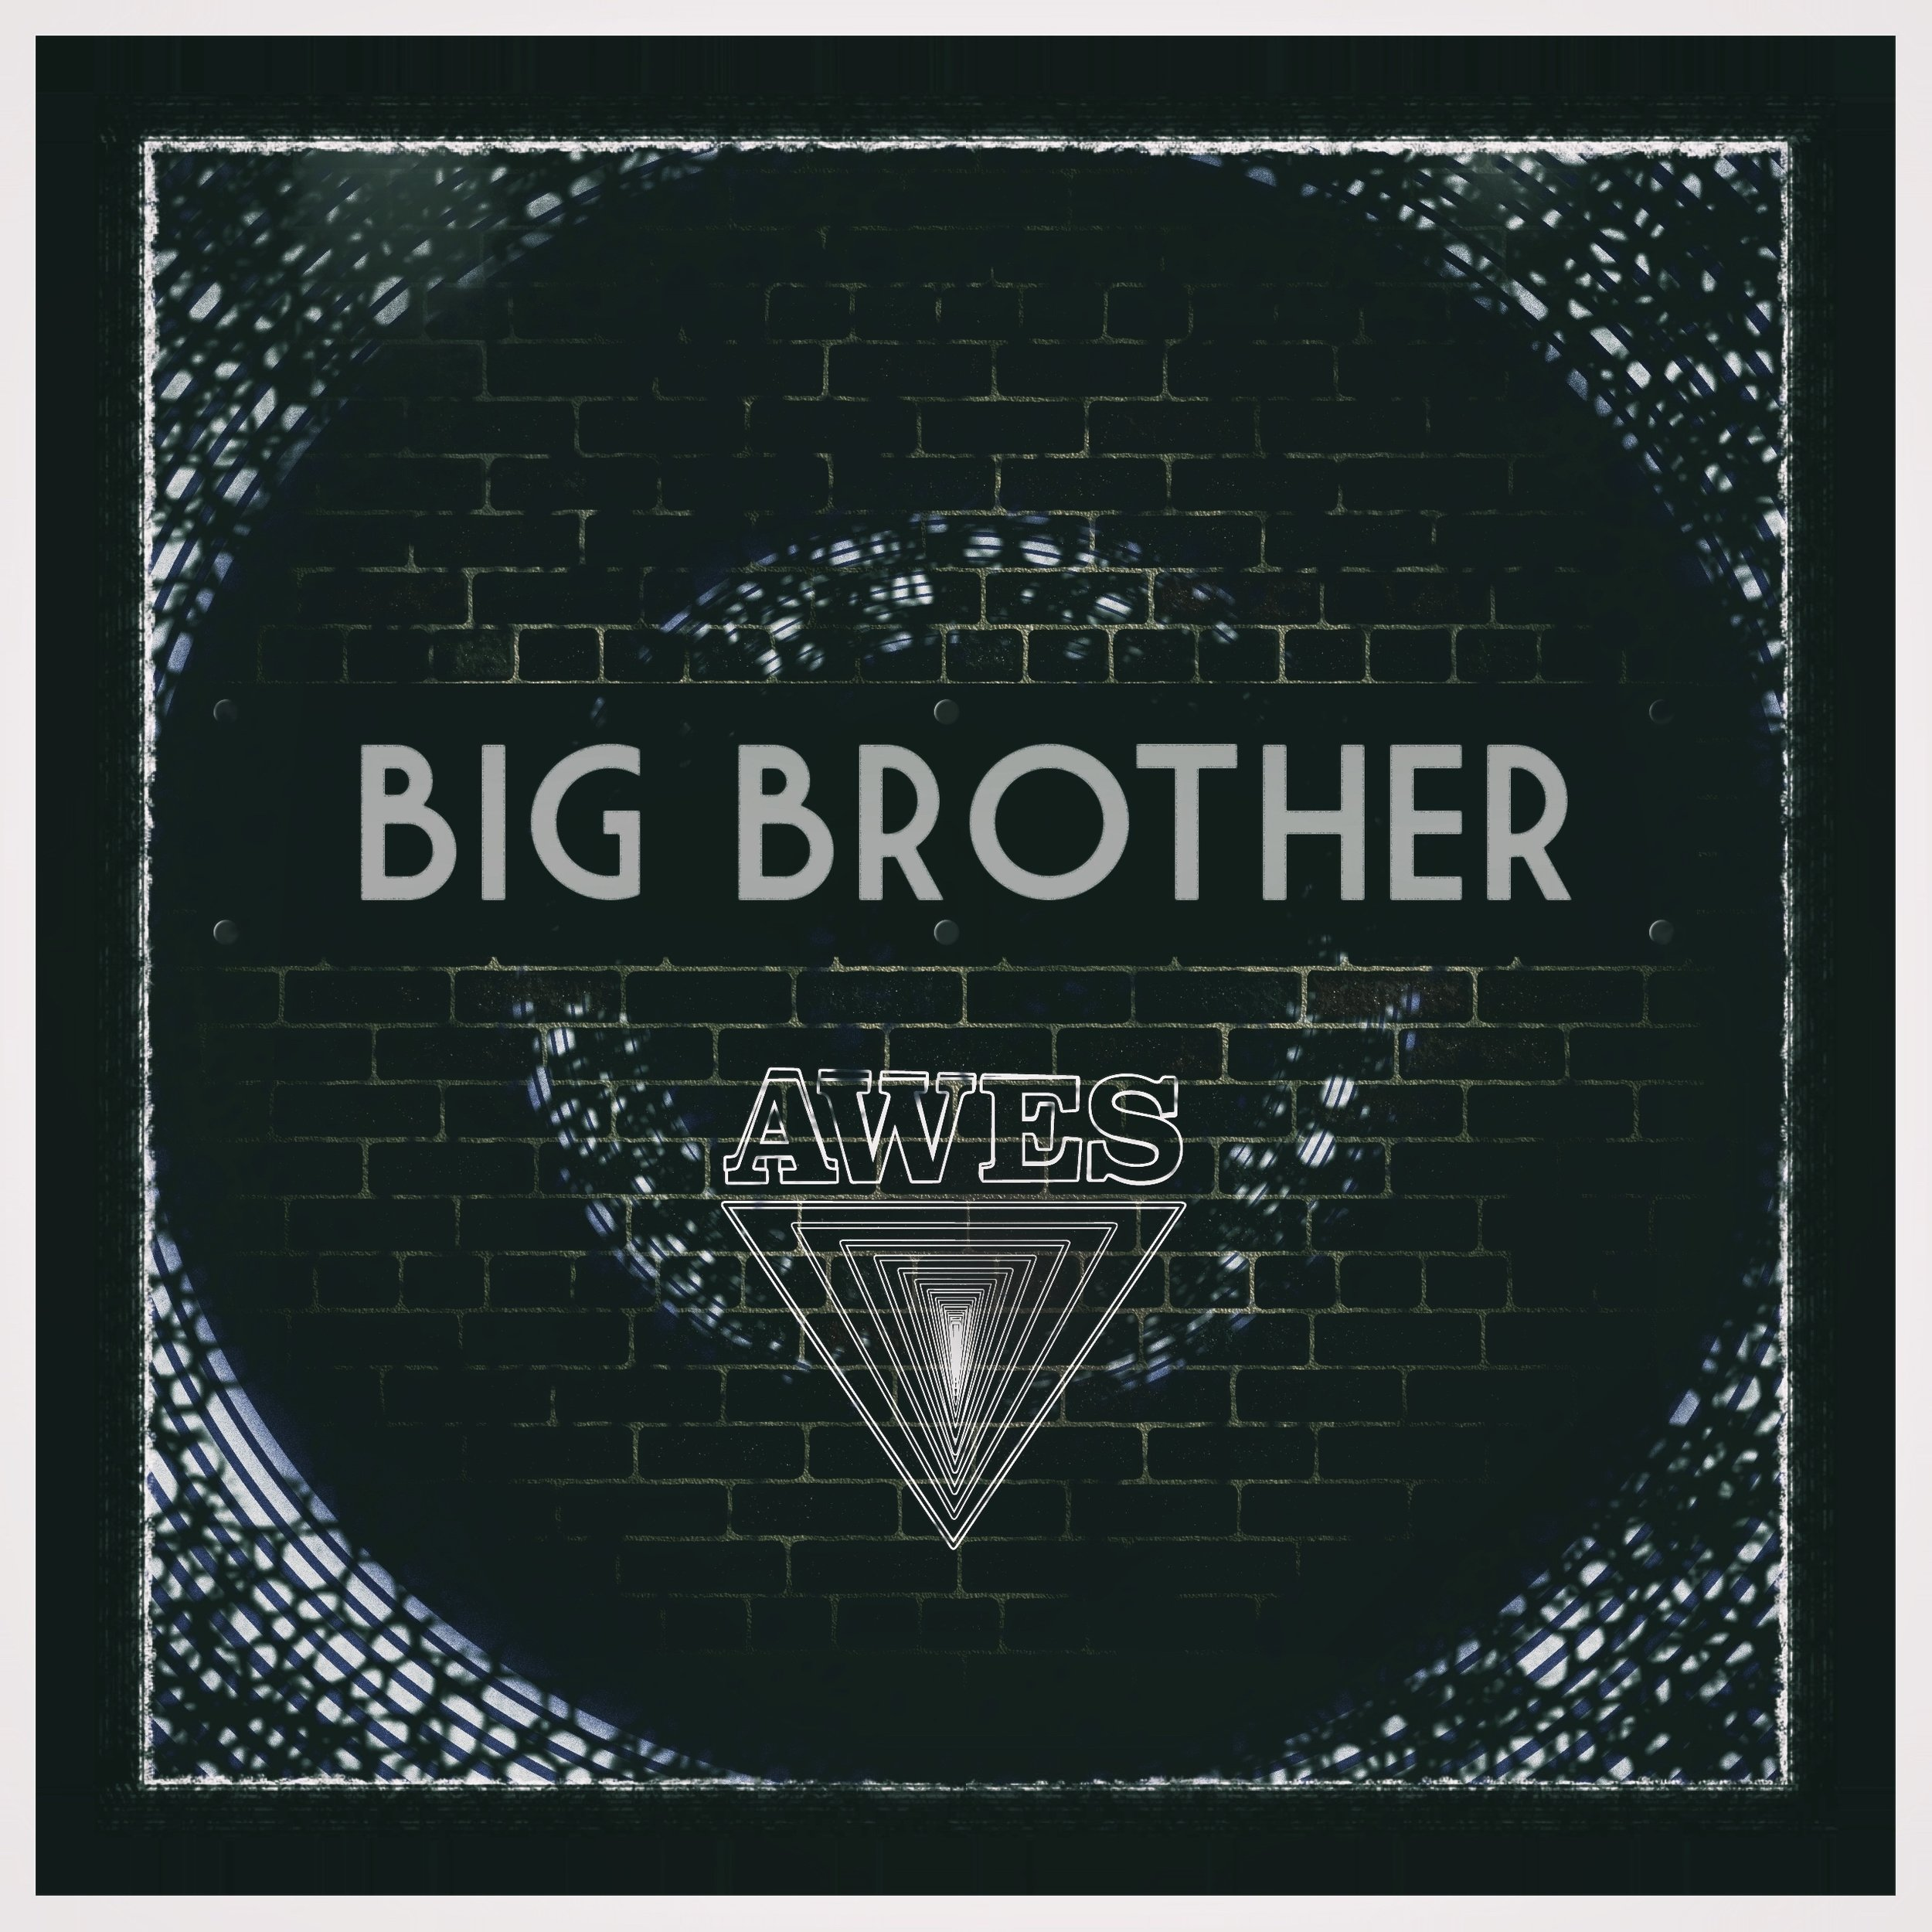 Big Brother Album Cover.jpg